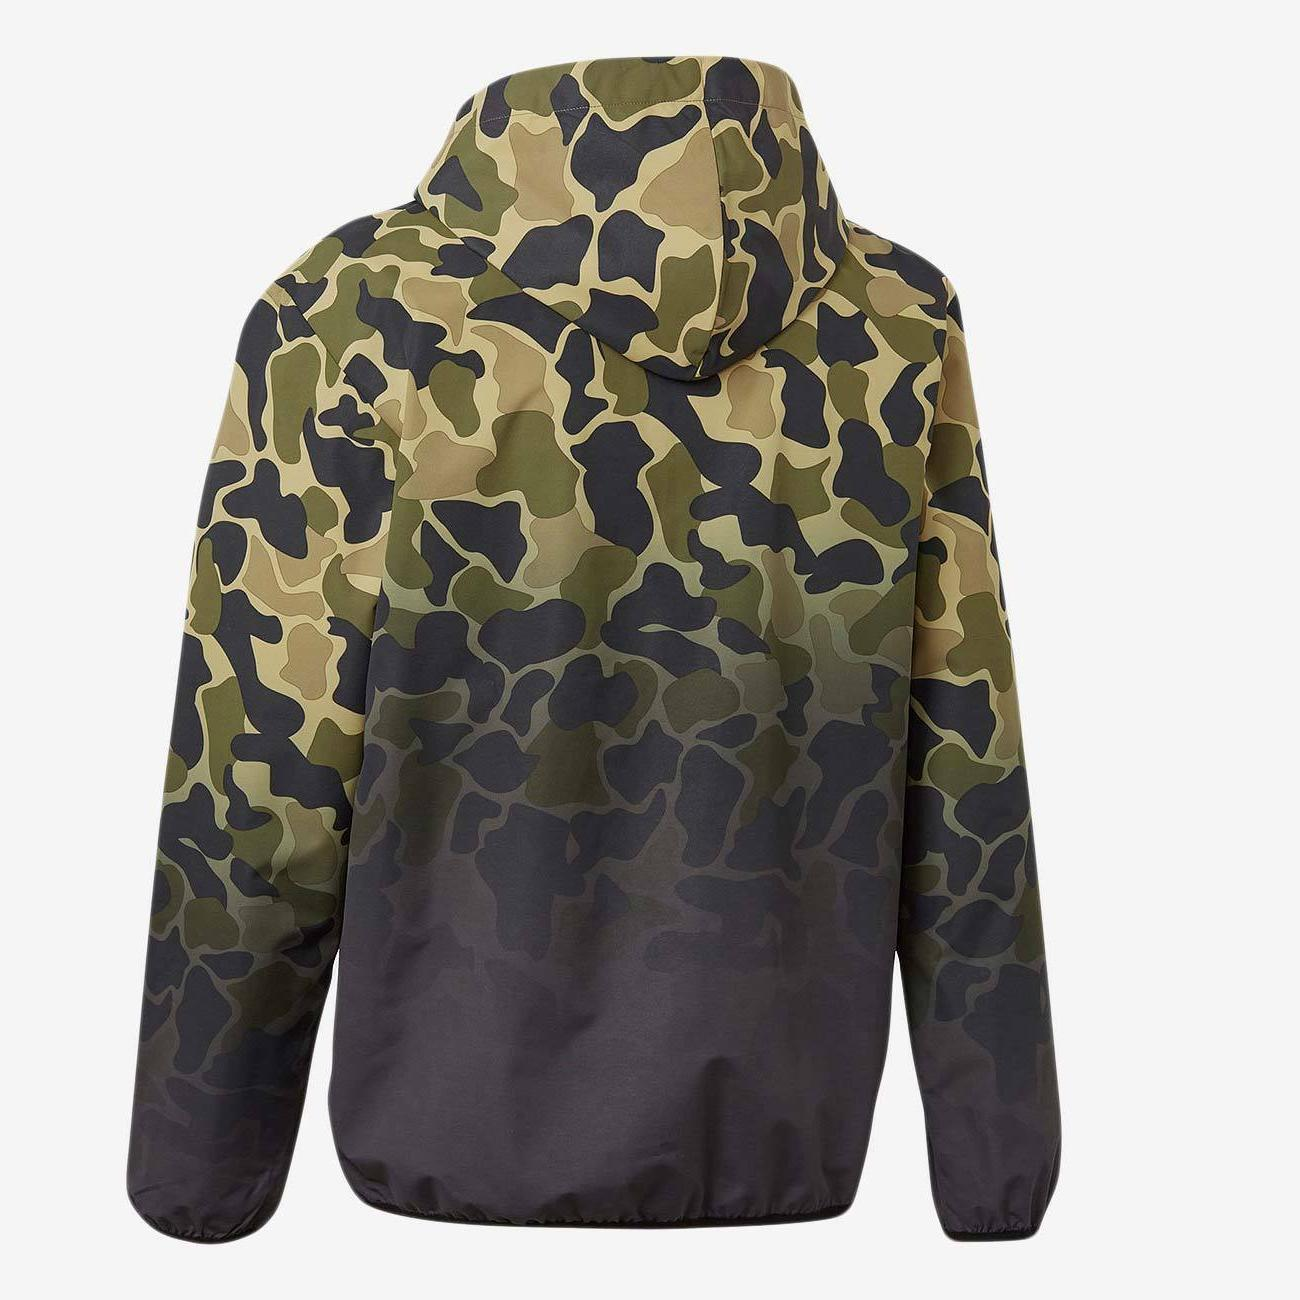 $100 Originals Camouflage Hoodie Small